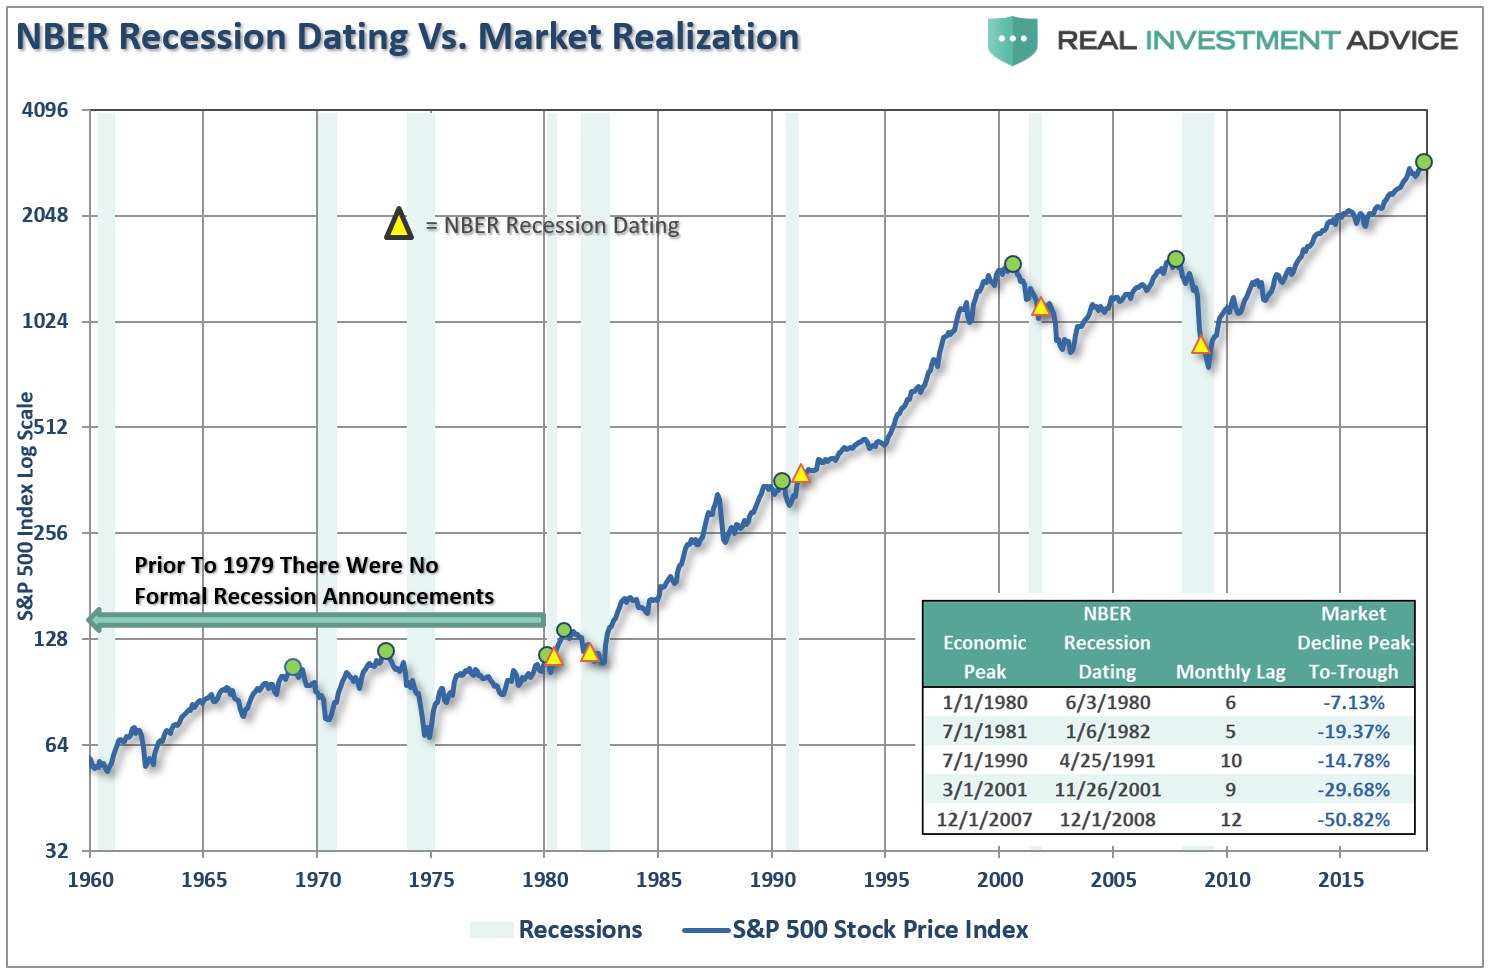 https://realinvestmentadvice.com/wp-content/uploads/2018/10/SP-500-Recessions-Dating-NBER-102418.png